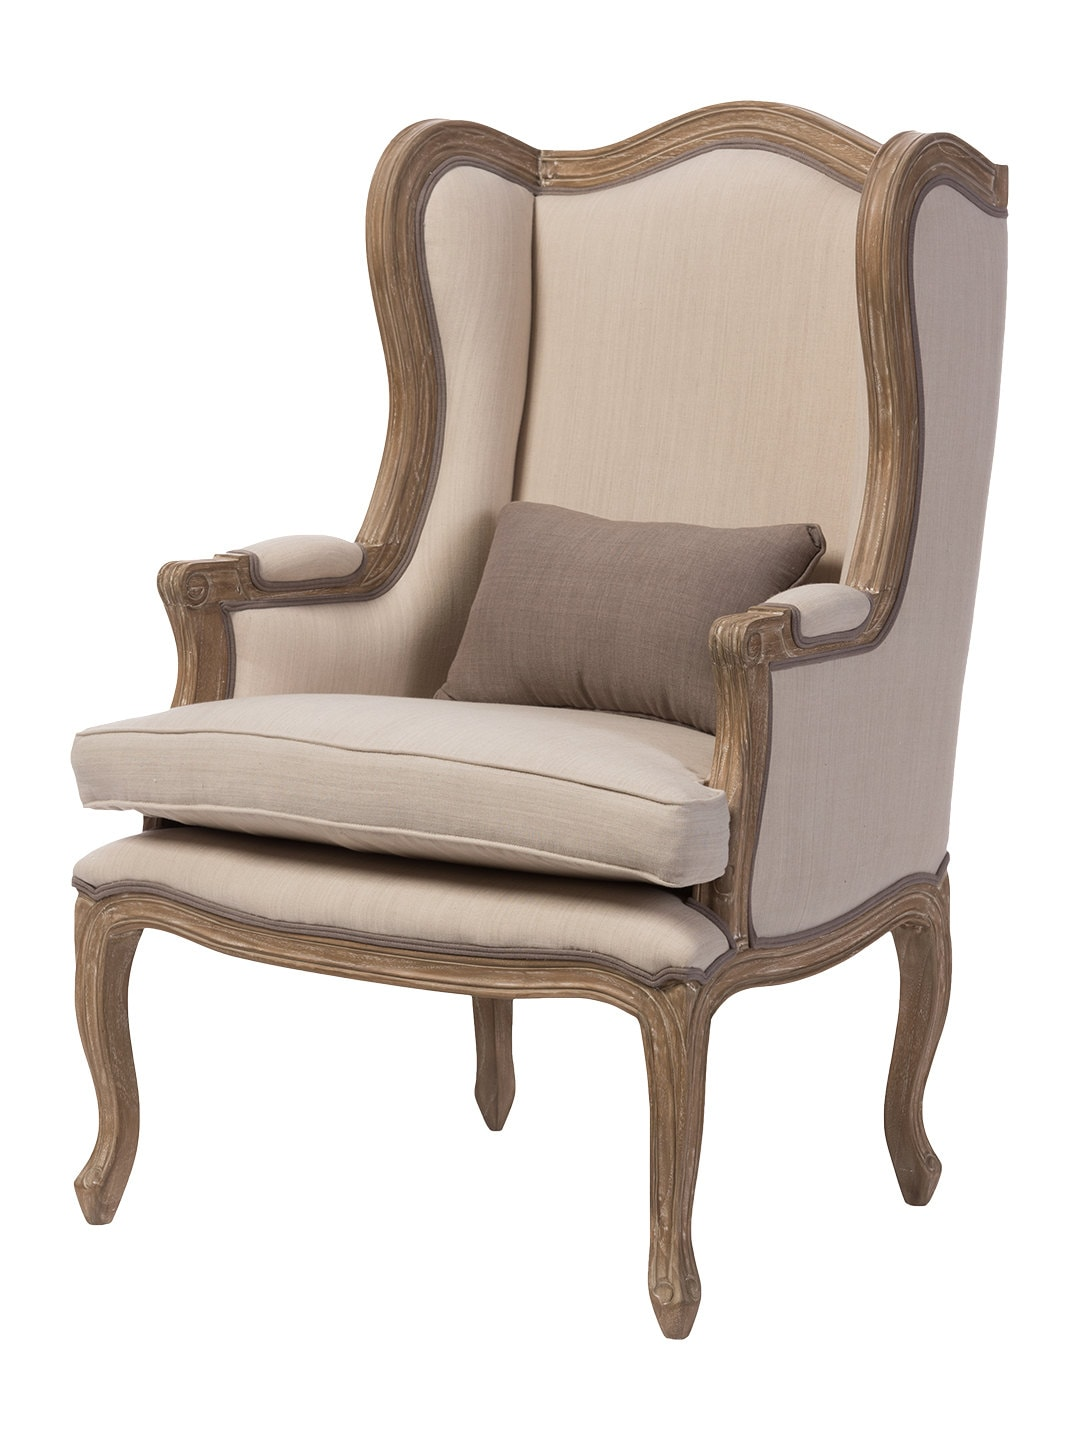 Where Can I Buy Accent Chairs